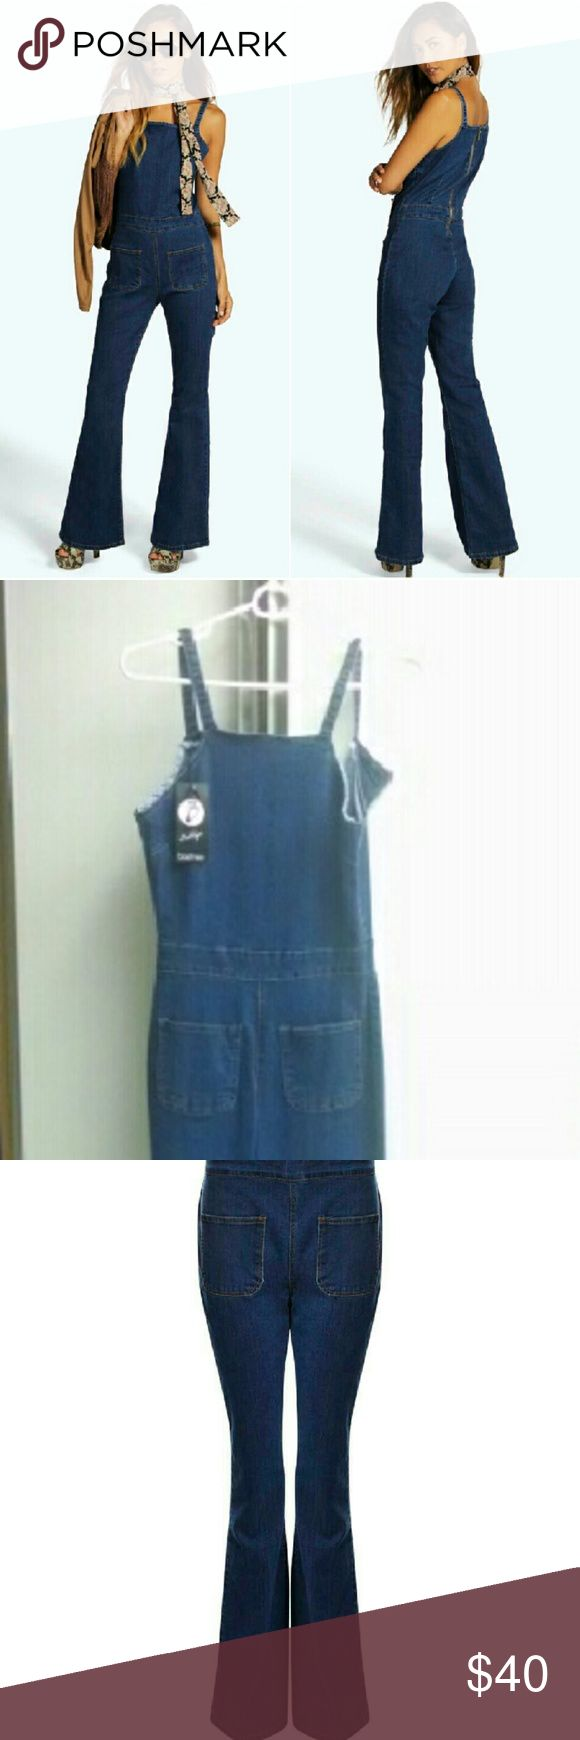 """Boohoo Stretch Body Con Boho Jumper Overalls Boohoo Boutique Ella Flared Leg overall style jumpsuit   New w tag Size US 2 - UK 6 back zip - front pockets I'd say true to size 2. I wear 4 and it's just too snug to flatter. so cute - wish it fit me well. meas.(laid flat, not stretched) armpit 15.5"""" waist 12.5"""" hip: 16"""" inseam: 33""""  retail $54 + tax/ship  condition - has 1 or 2 very pale marks on the leg -probably just from storage brushing on floor. reminds me of the Pylo Lady bird jumper from…"""